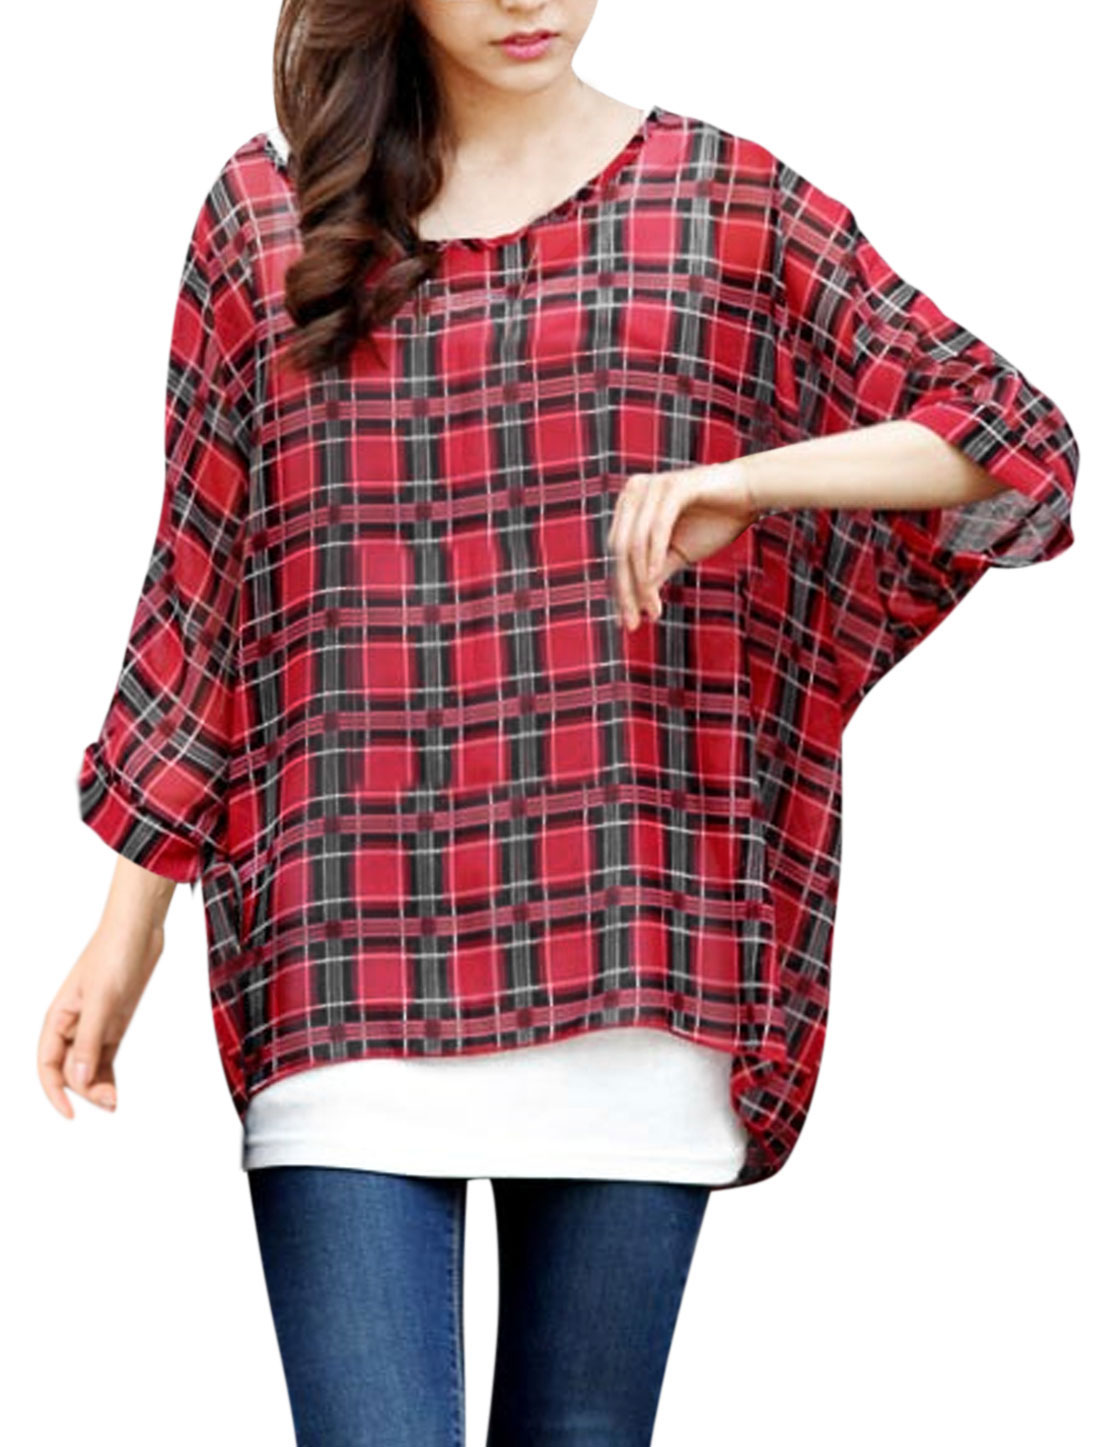 Women 3/4 Batwing Sleeves Checkered Pattern Loose Fit Casual Shirts Red S